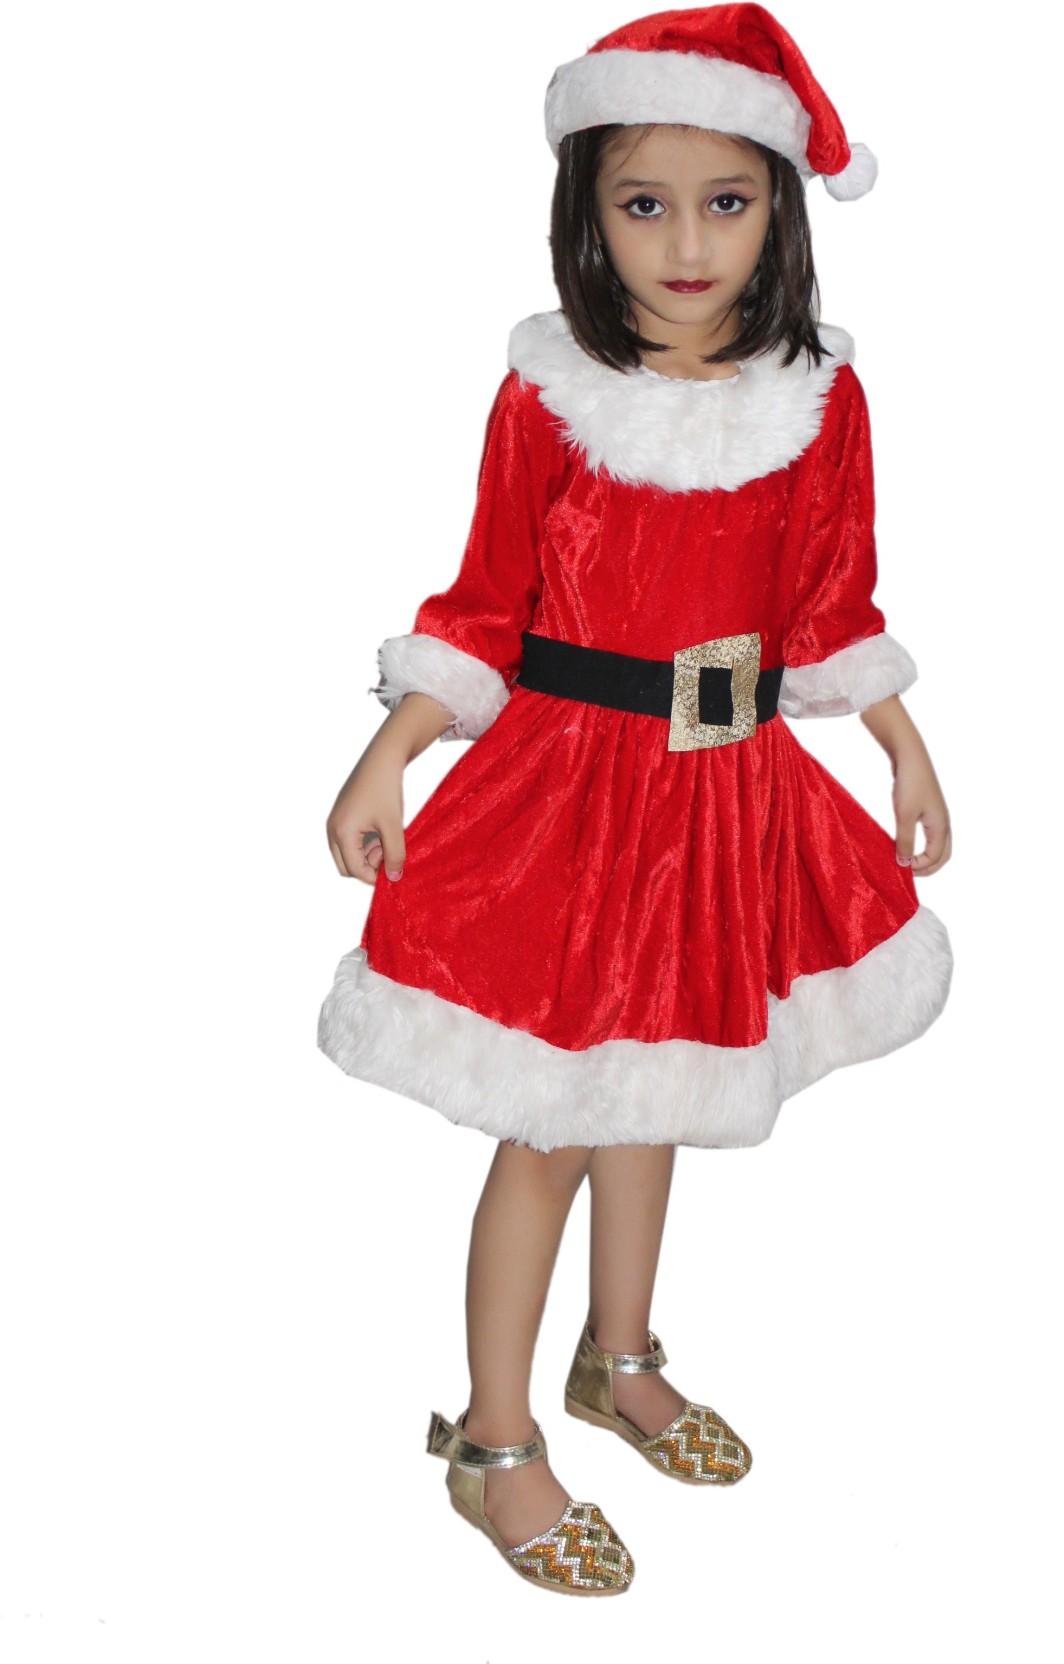 6ebe72035 Kaku Fancy Dresses Santa Girl fancy dress for kids,Christmas Day costume  for annual function/theme party/competition/Stage Shows/Birthday Party  Dress Kids ...